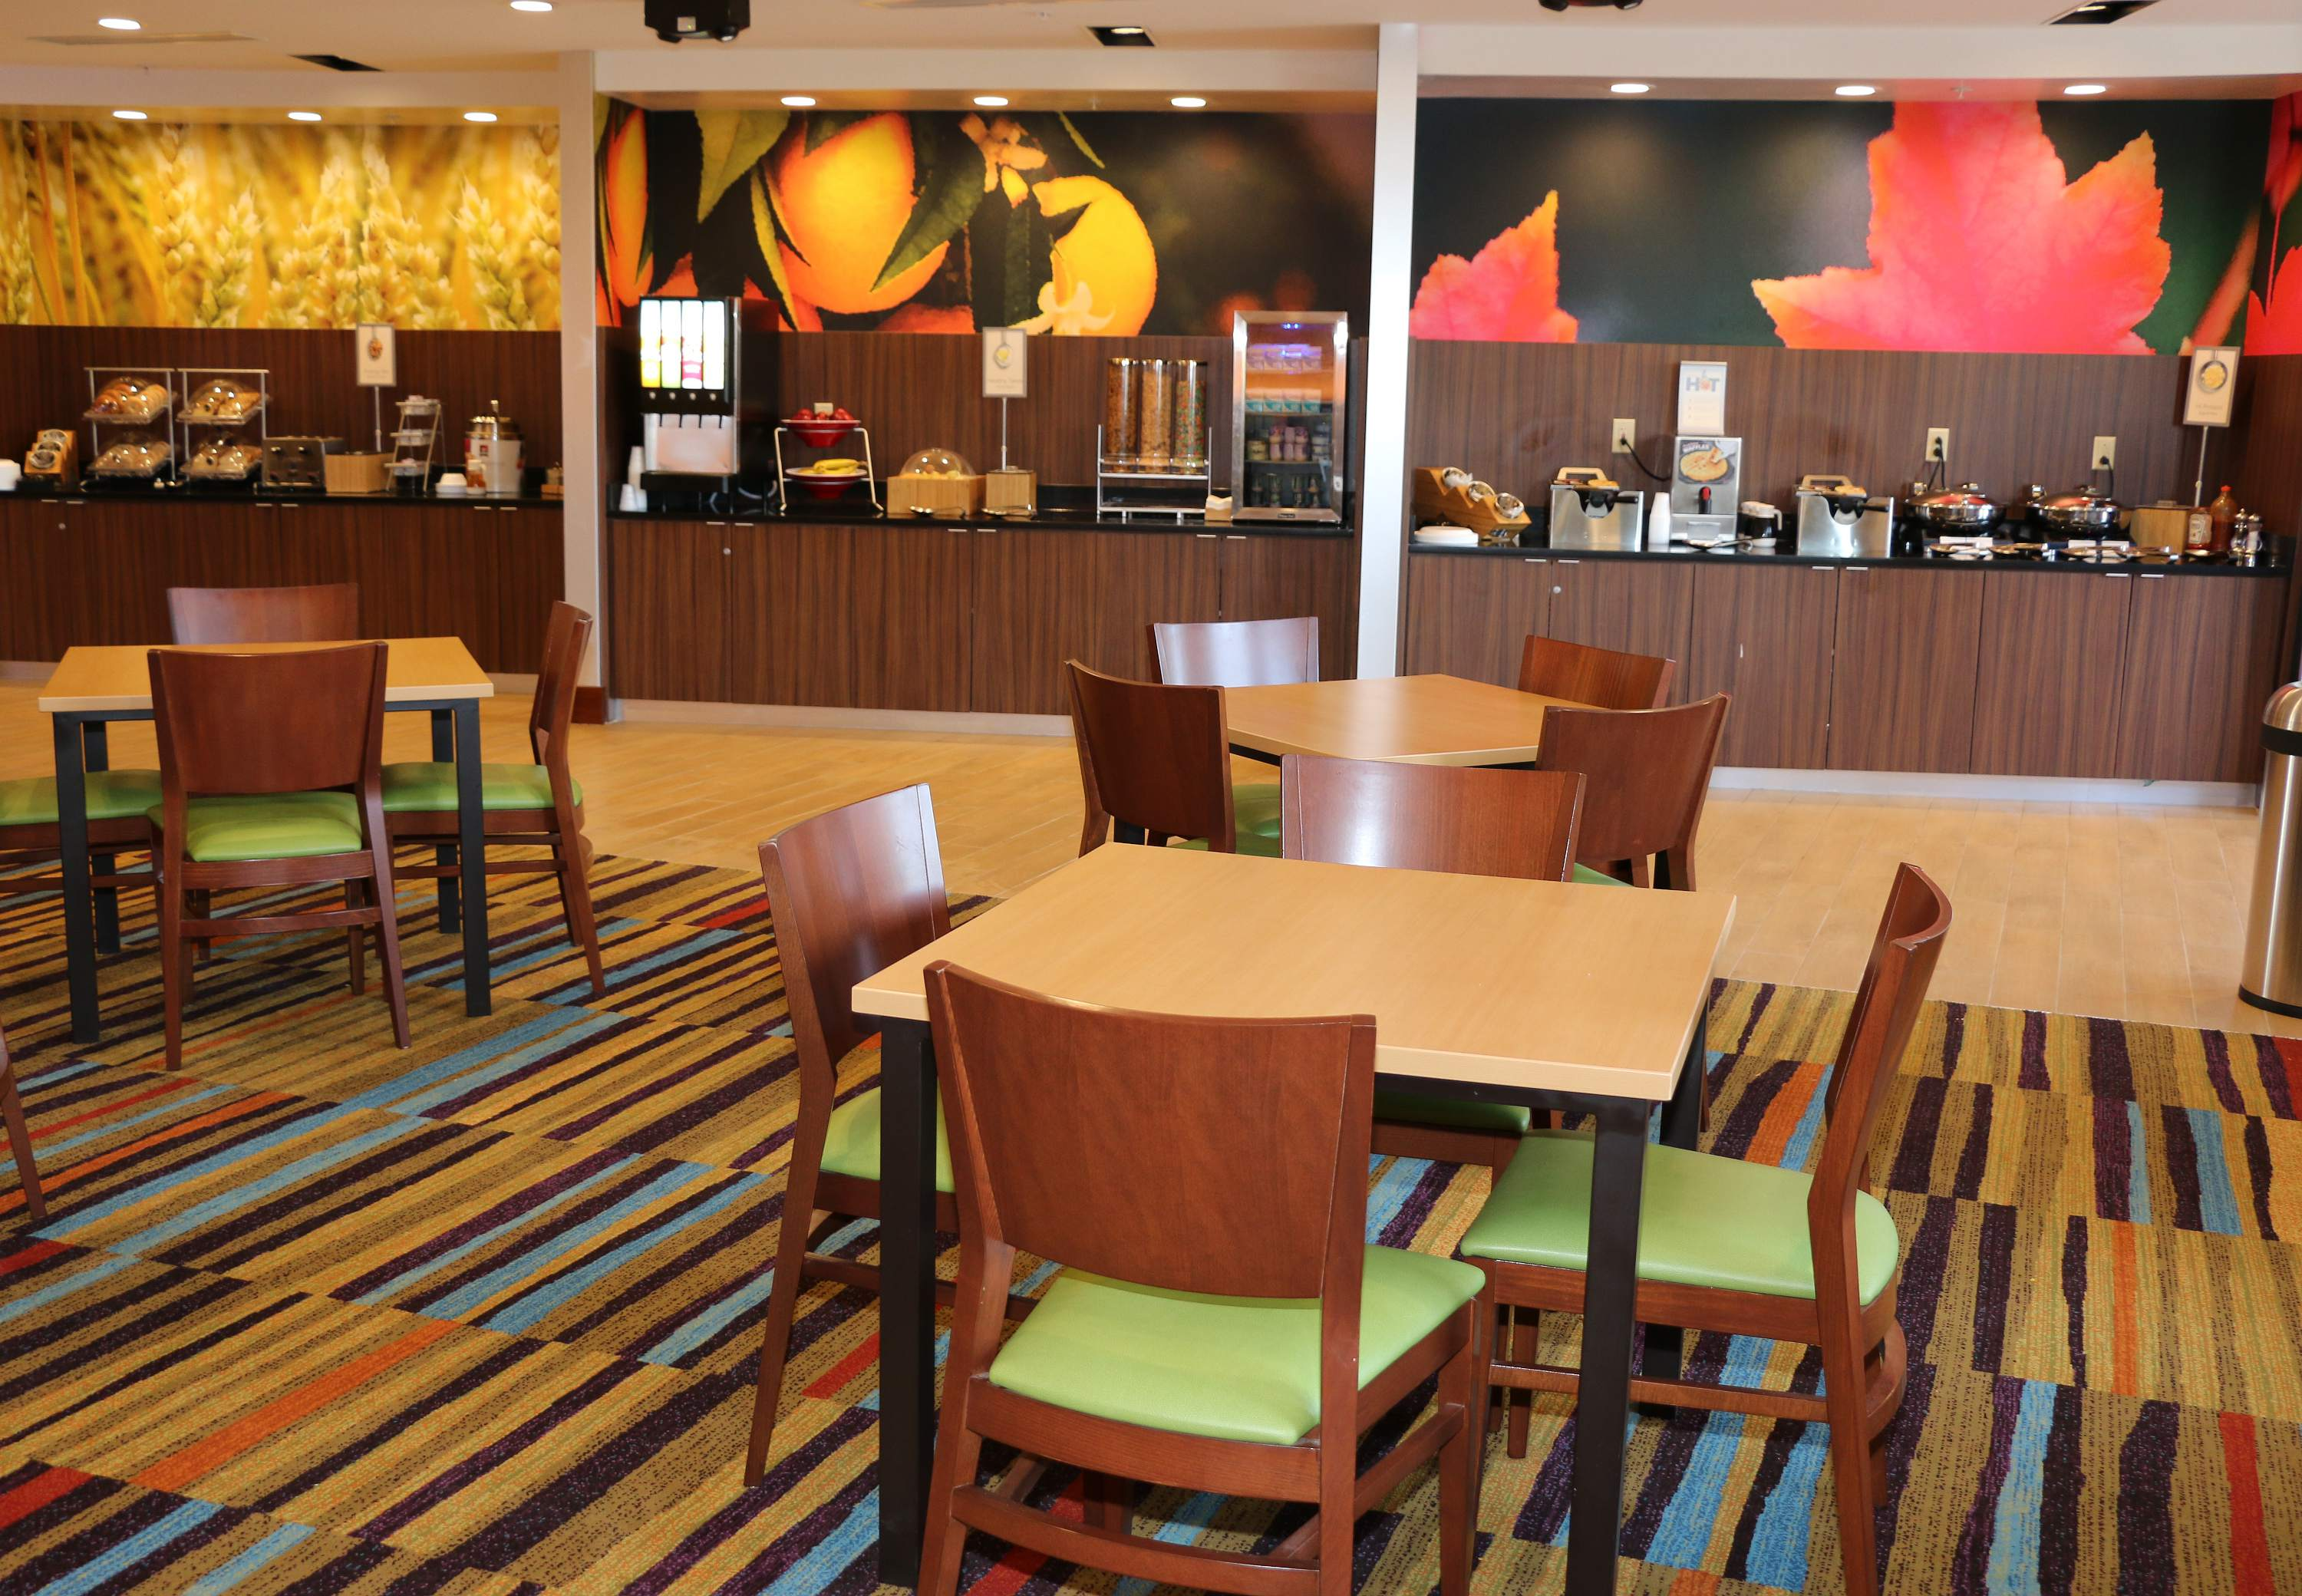 Fairfield Inn & Suites by Marriott Bowling Green image 11